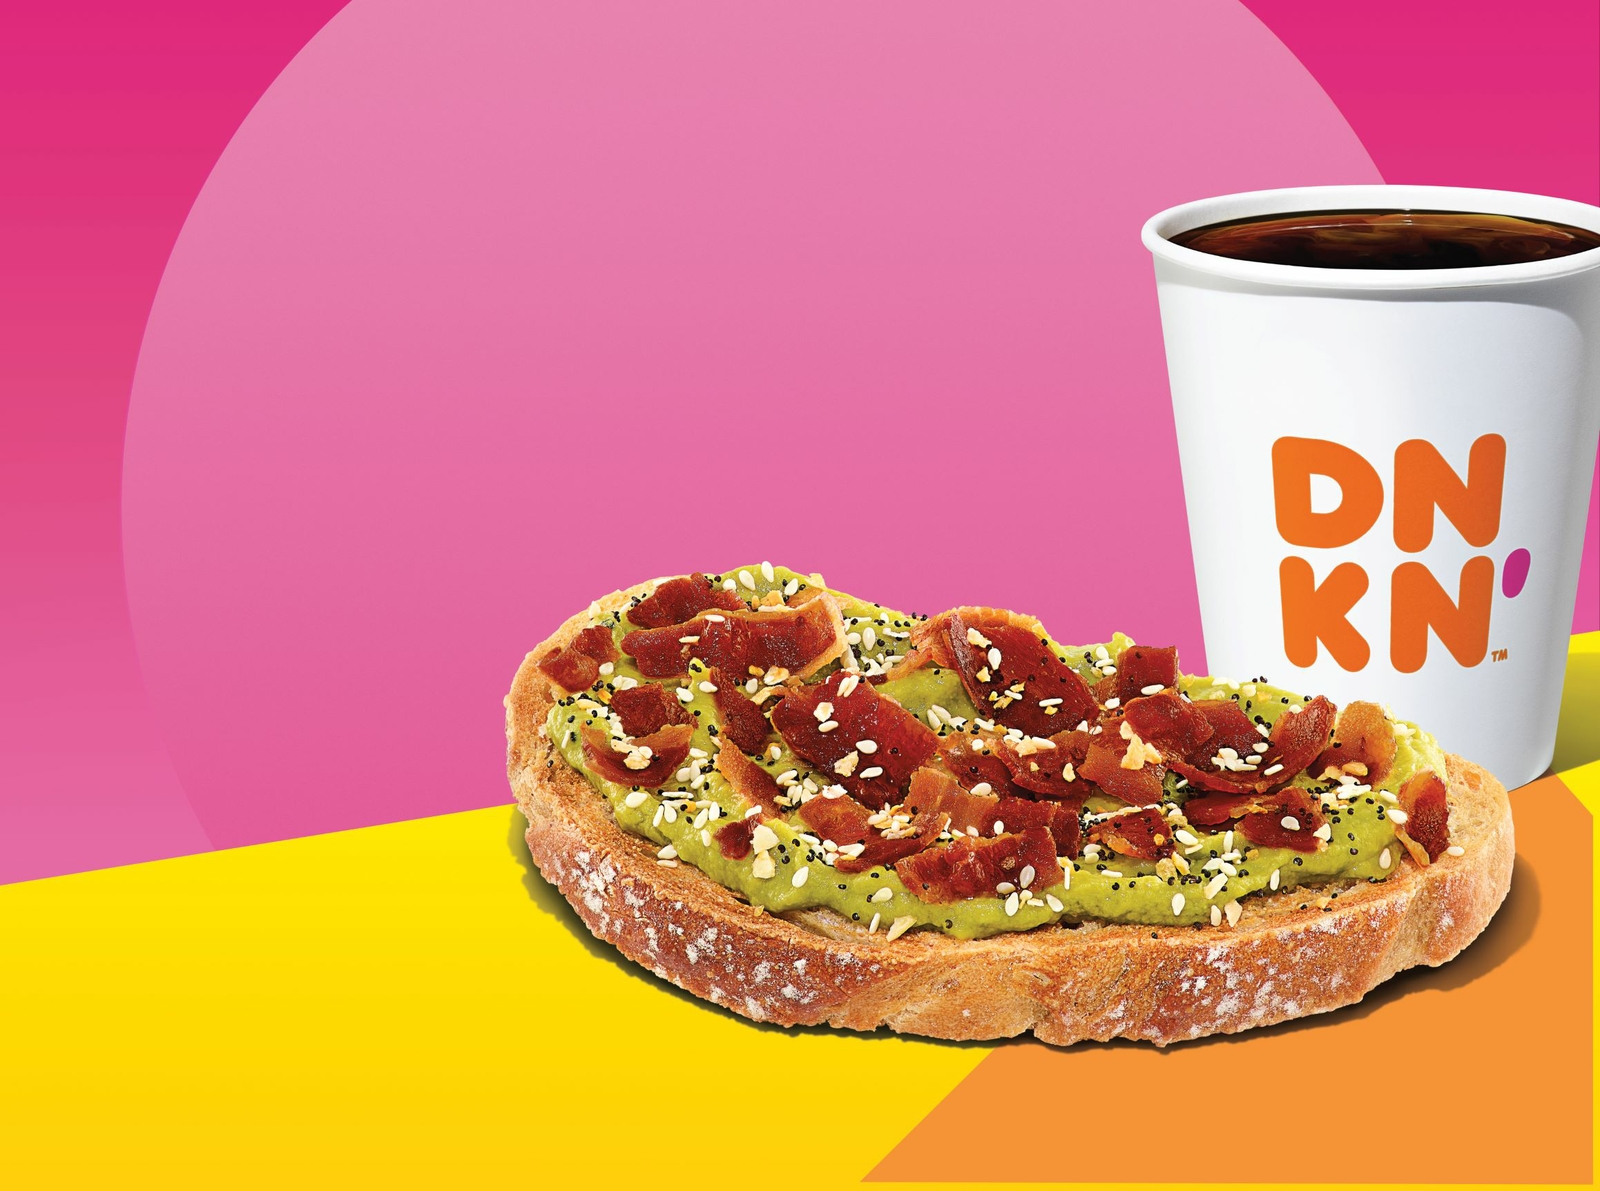 Summer Starts Early at Dunkin' with New Sunrise Batch Hot Coffee and New Butter Pecan Sundae Signature Latte